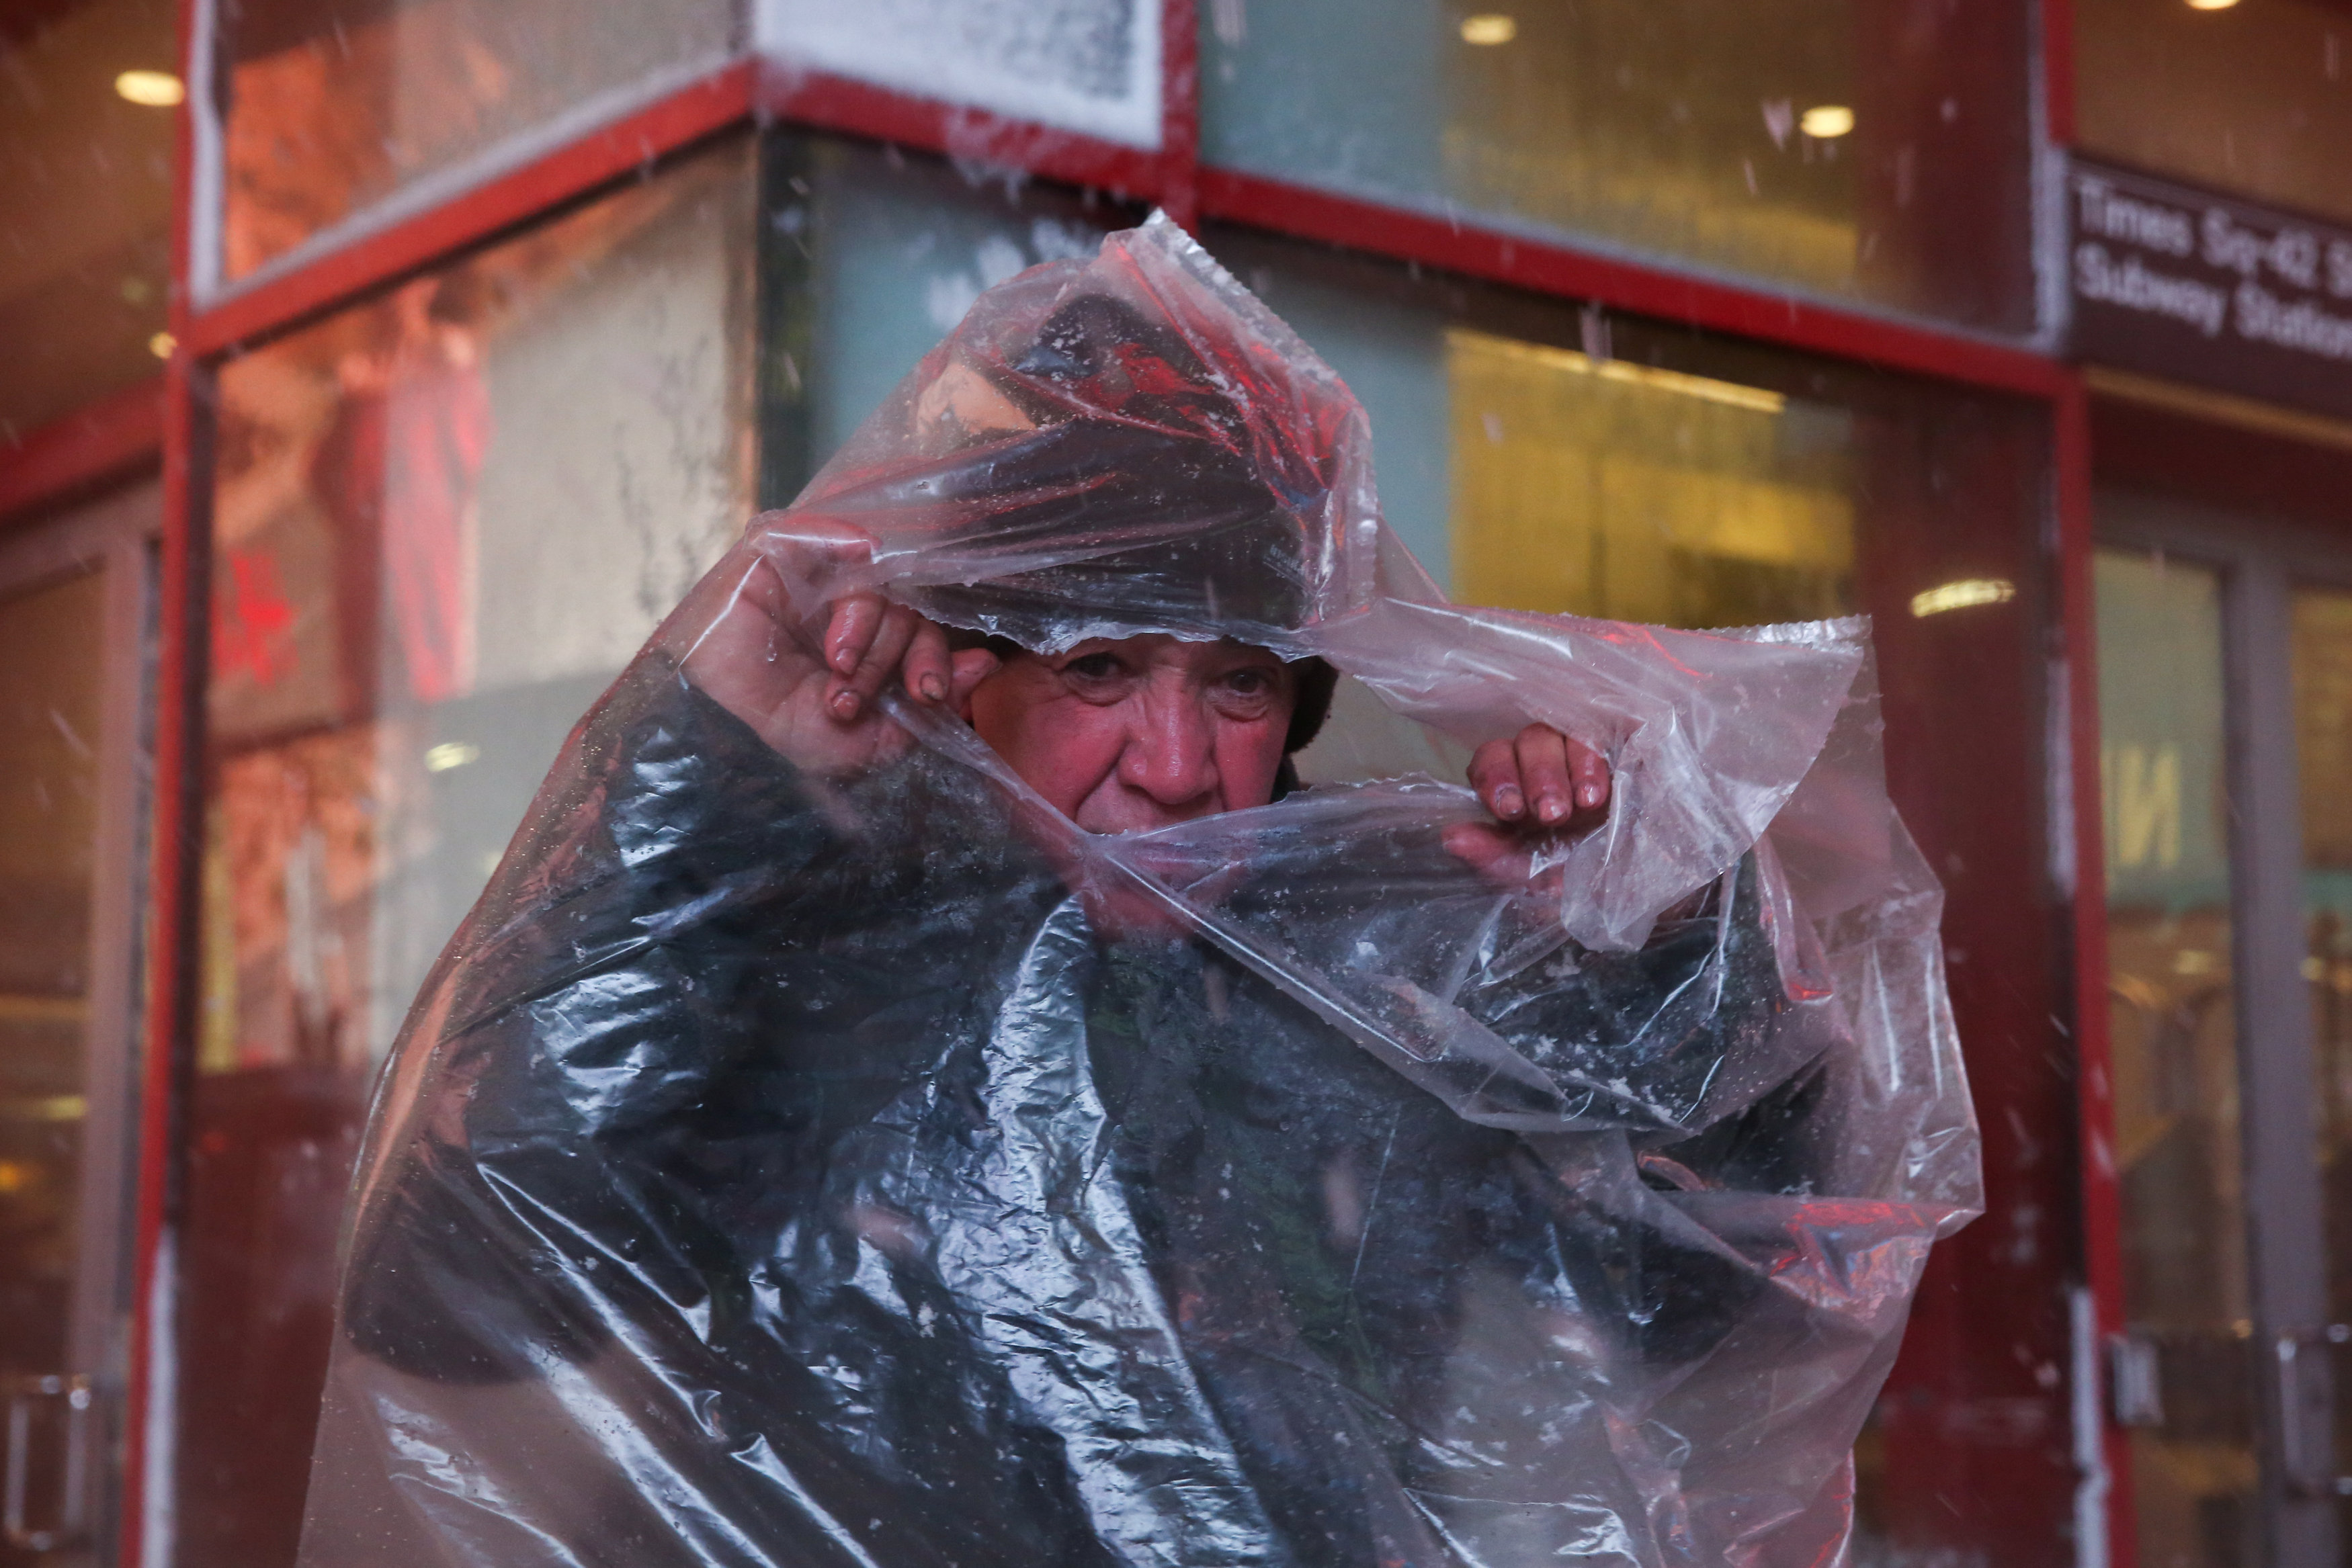 A man takes shelter as snow falls in Times Square in Manhattan in New York City, New York, U.S., March 7, 2018. REUTERS/Amr Alfiky